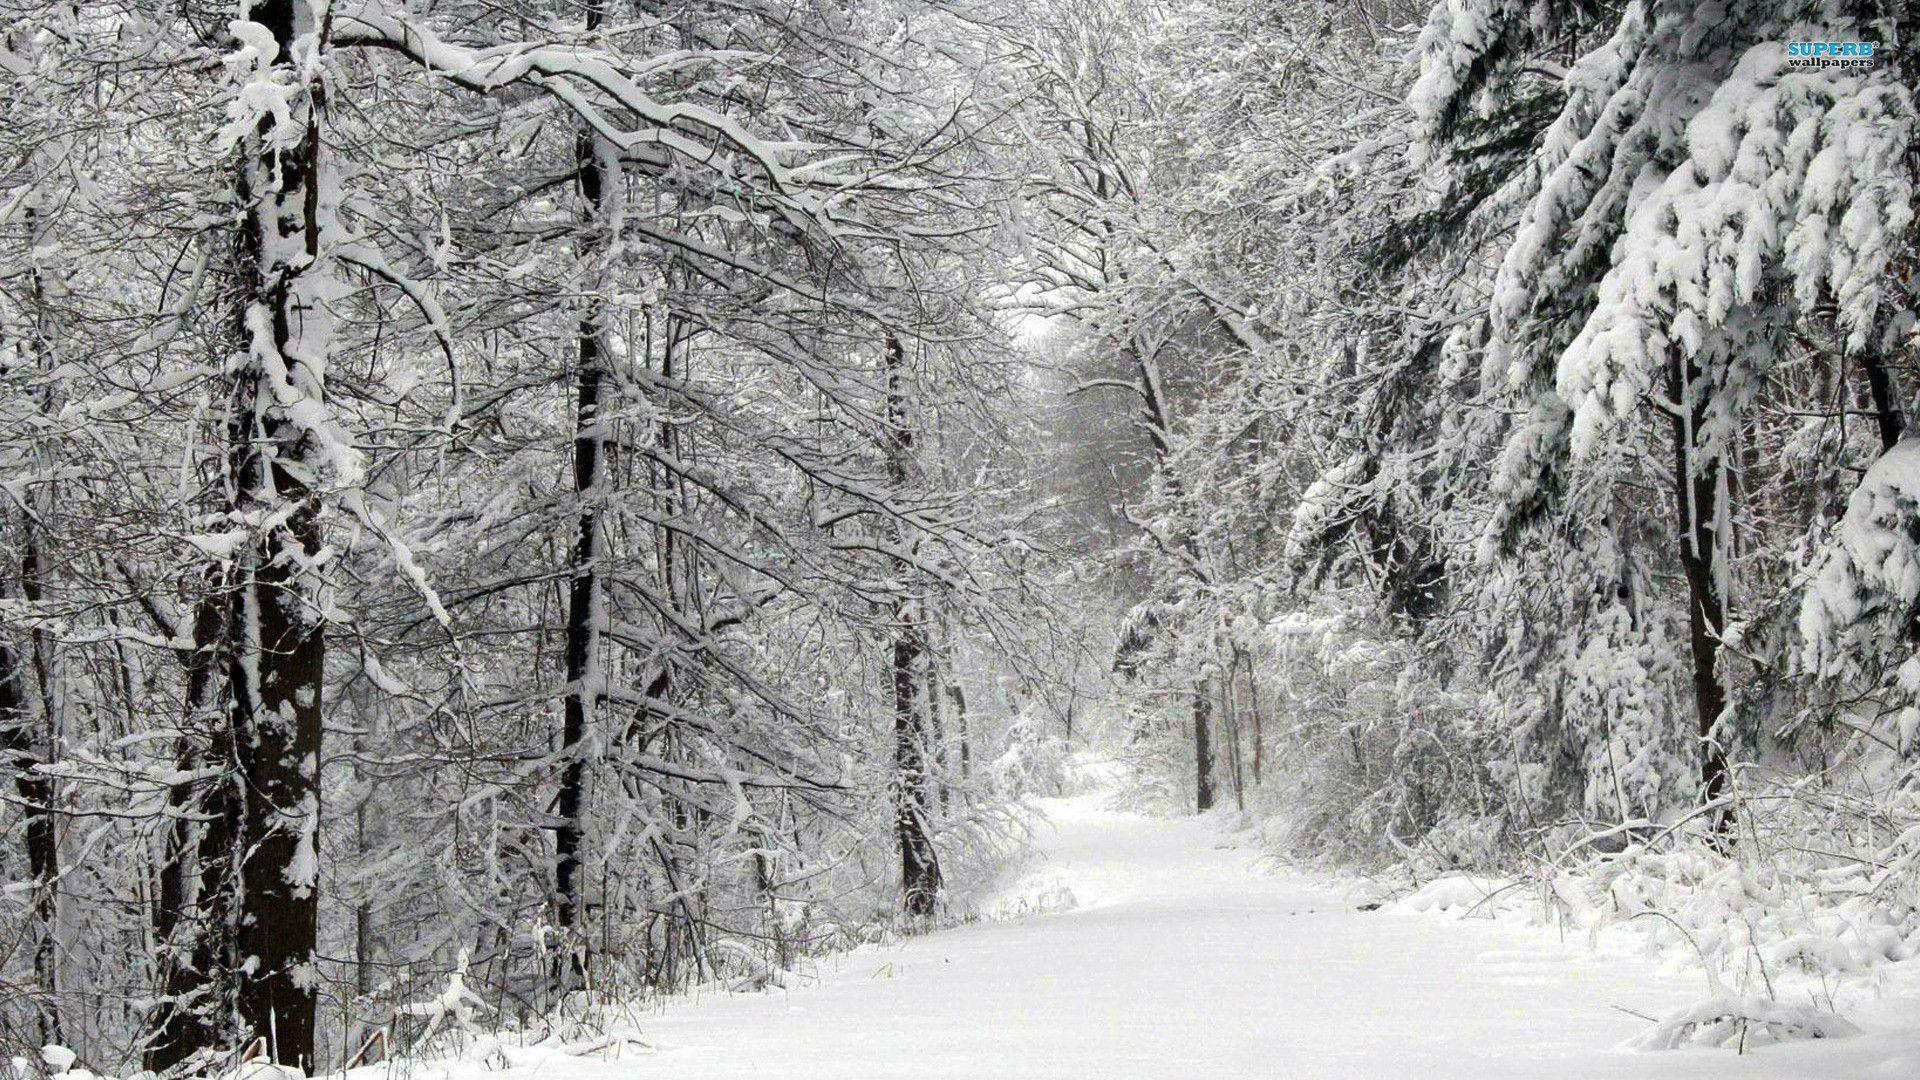 Snow forest wallpapers wallpaper cave - Snowy wallpaper ...